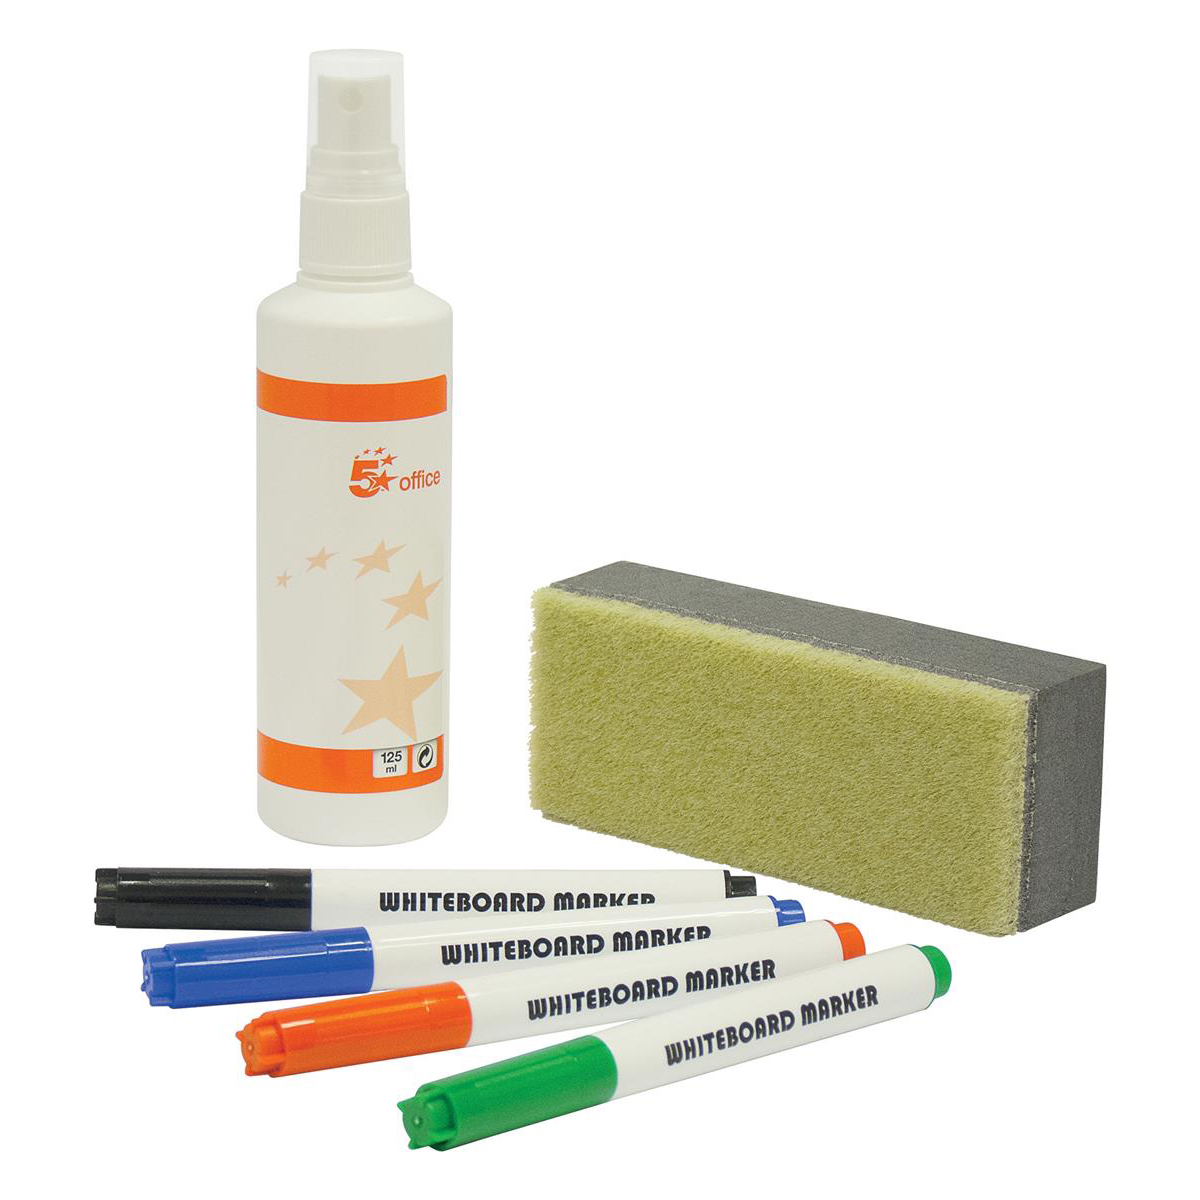 Chalk Markers 5 Star Office Drywipe Starter Kit 4 Asst Whiteboard Markers/Eraser/125ml Whiteboard Cleaning Fluid Spray